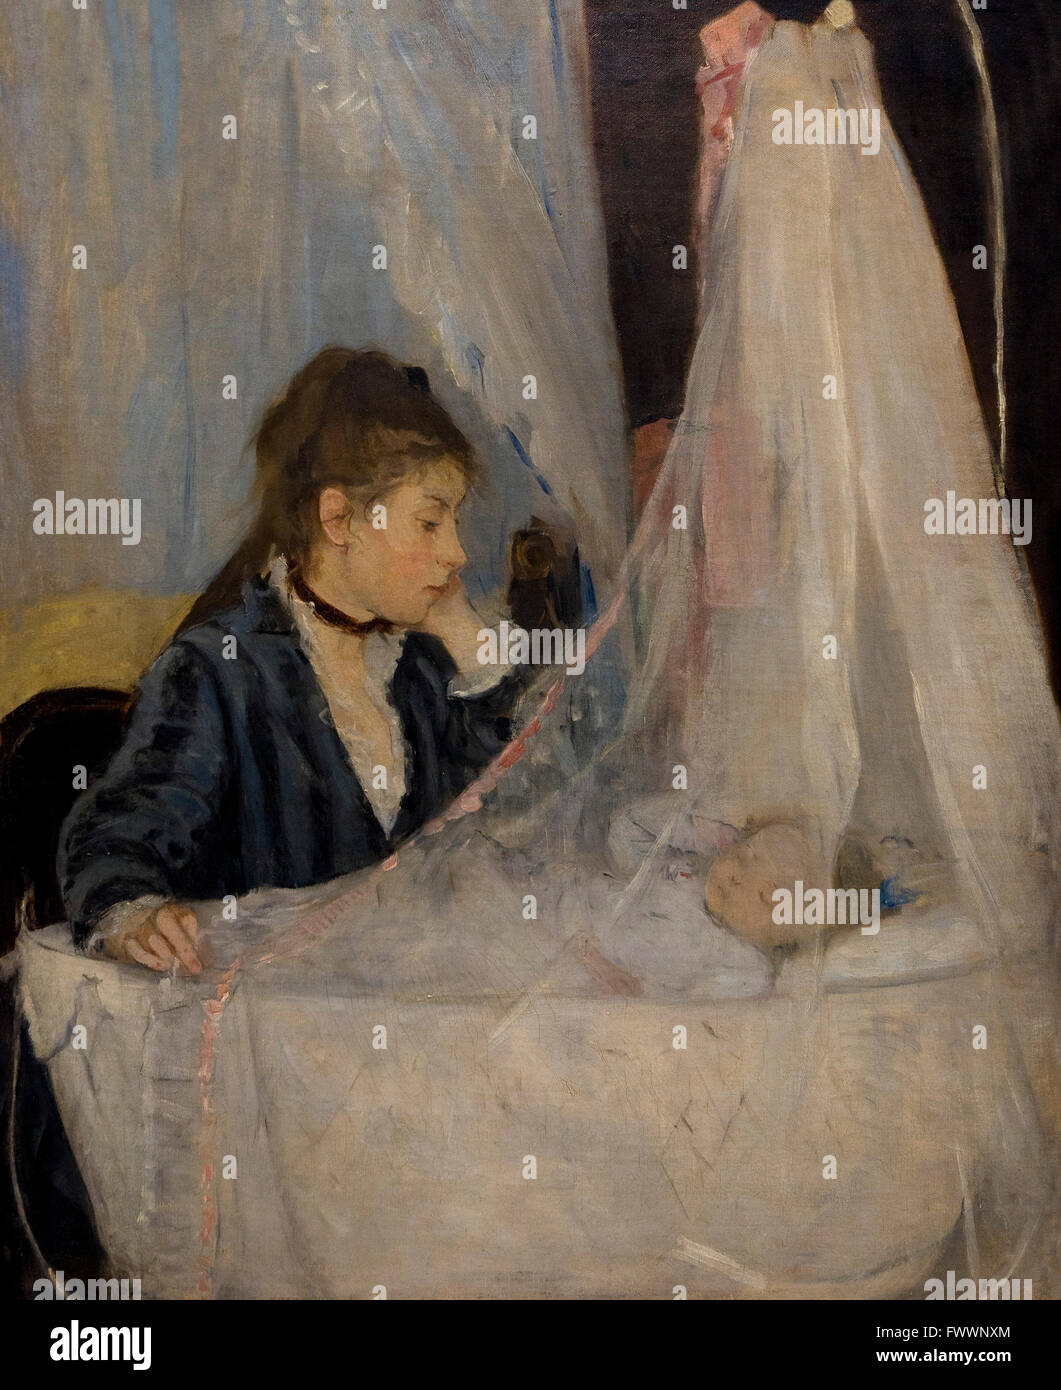 The Cradle, Le Berceau, by Berthe Morisot, 1872, Musee D'Orsay Paris France Europe - Stock Image